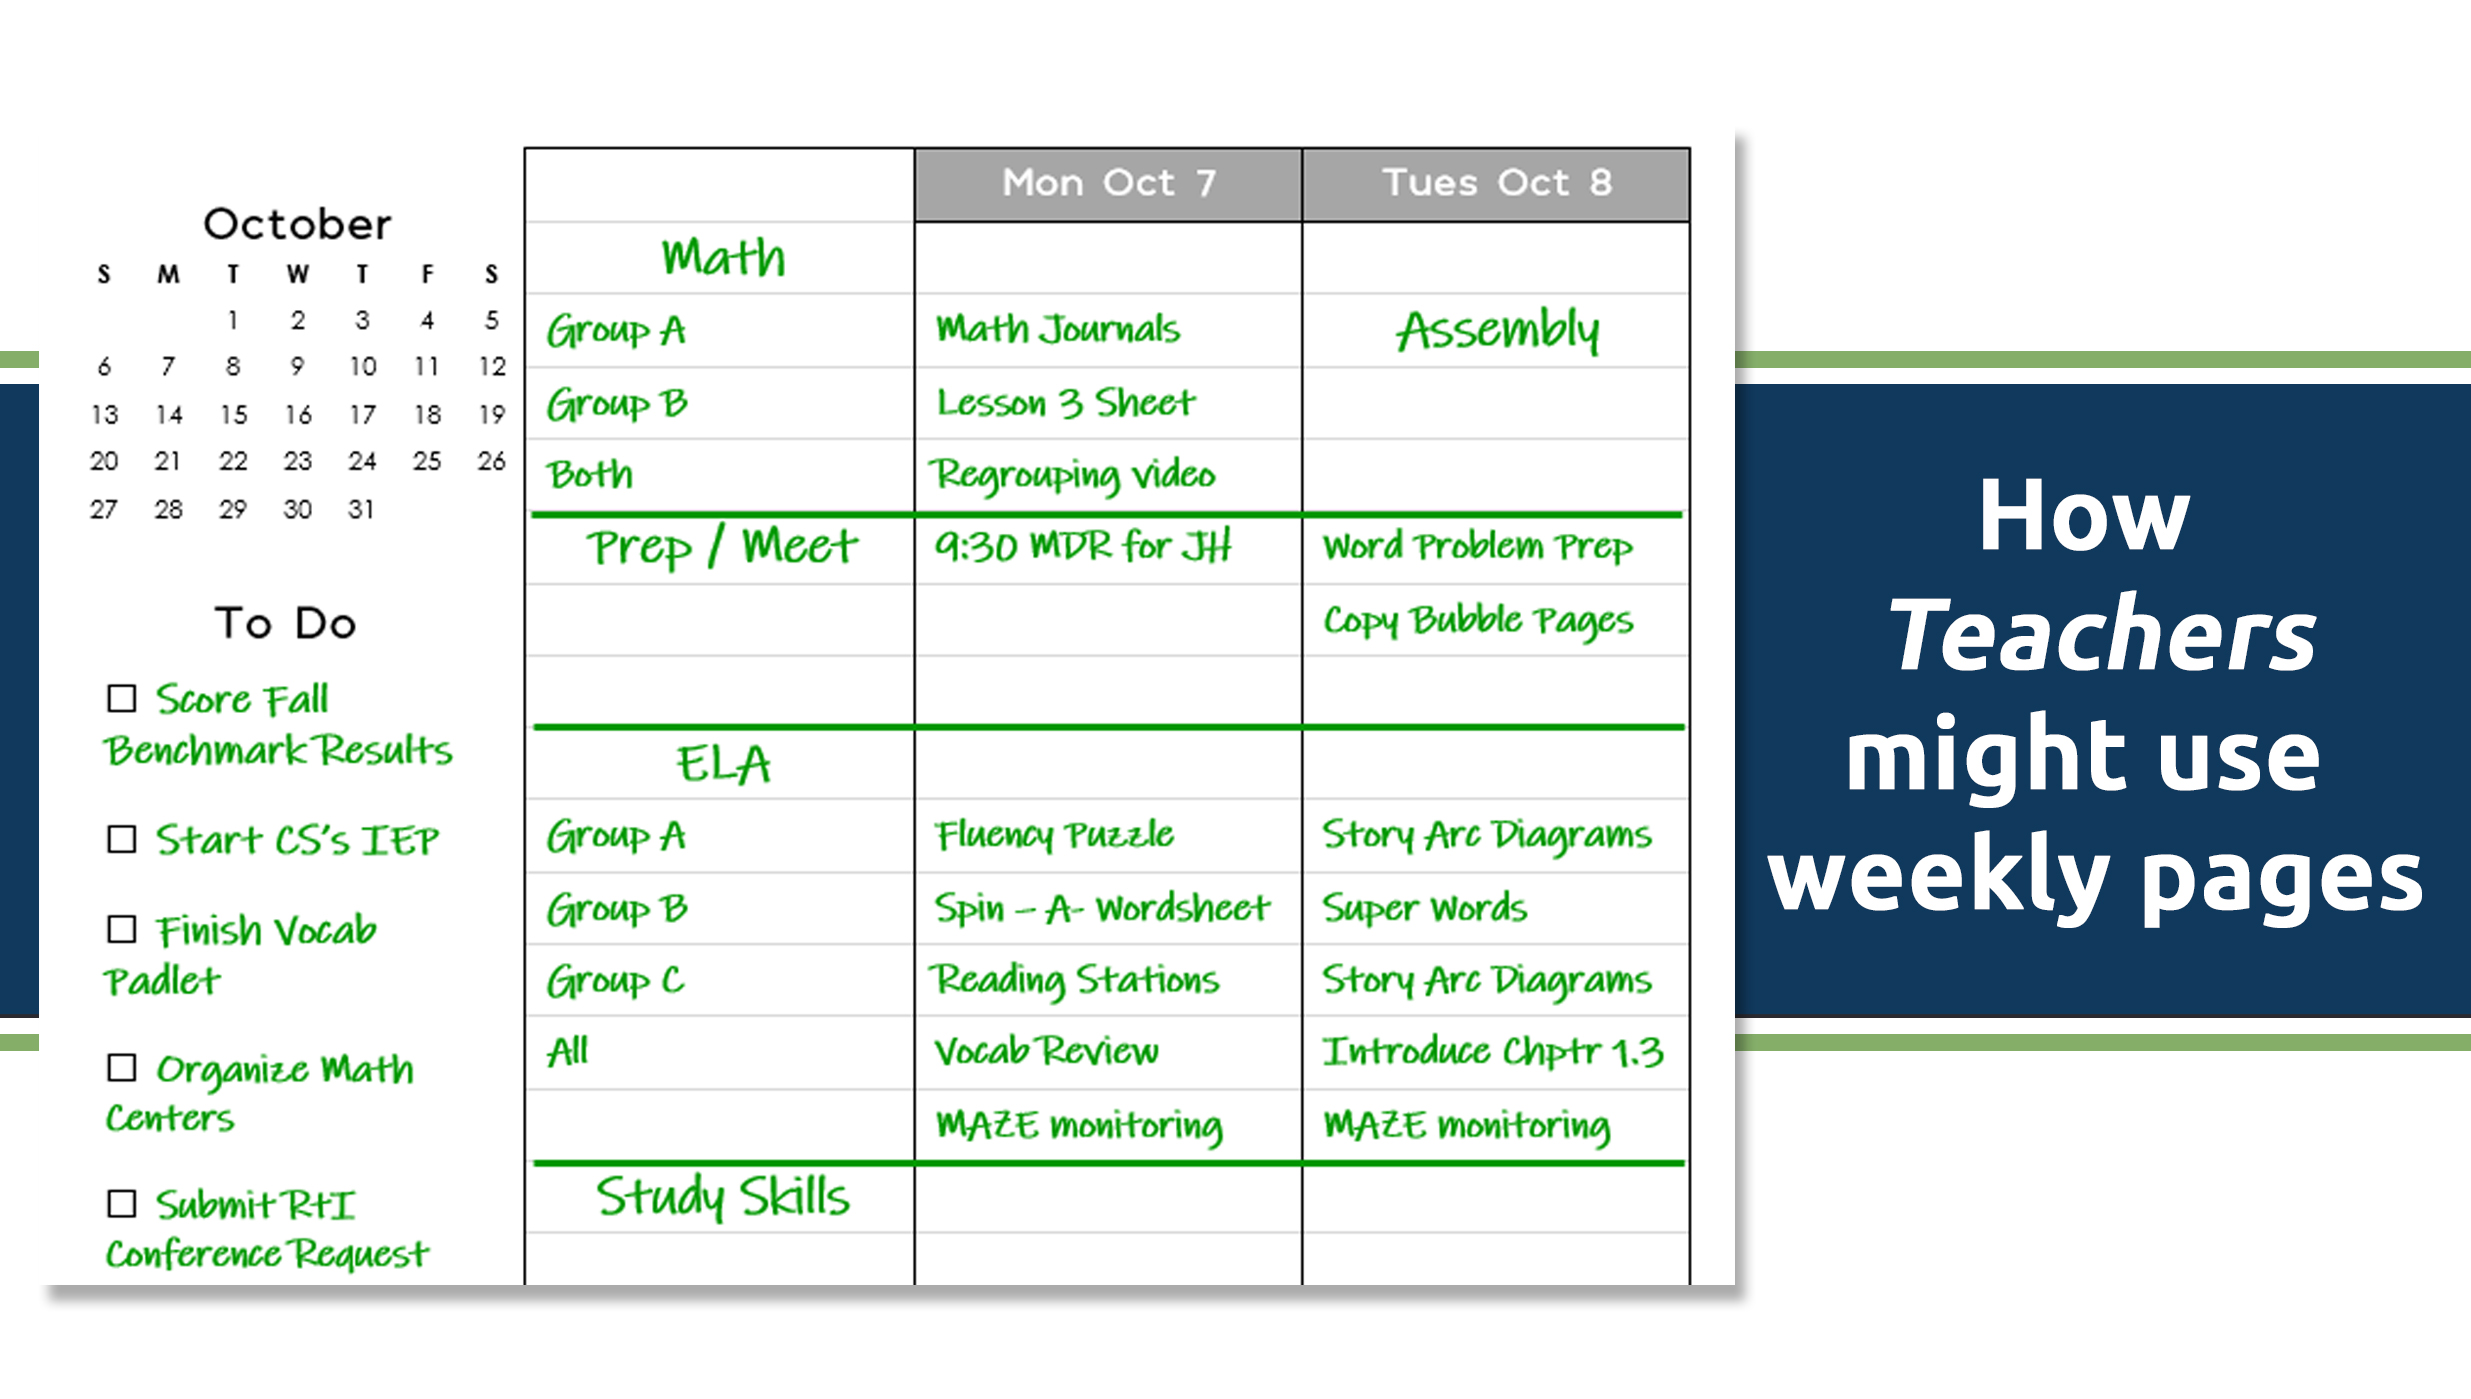 Teacher Planner - Weekly Pages how teacher would use.jpg